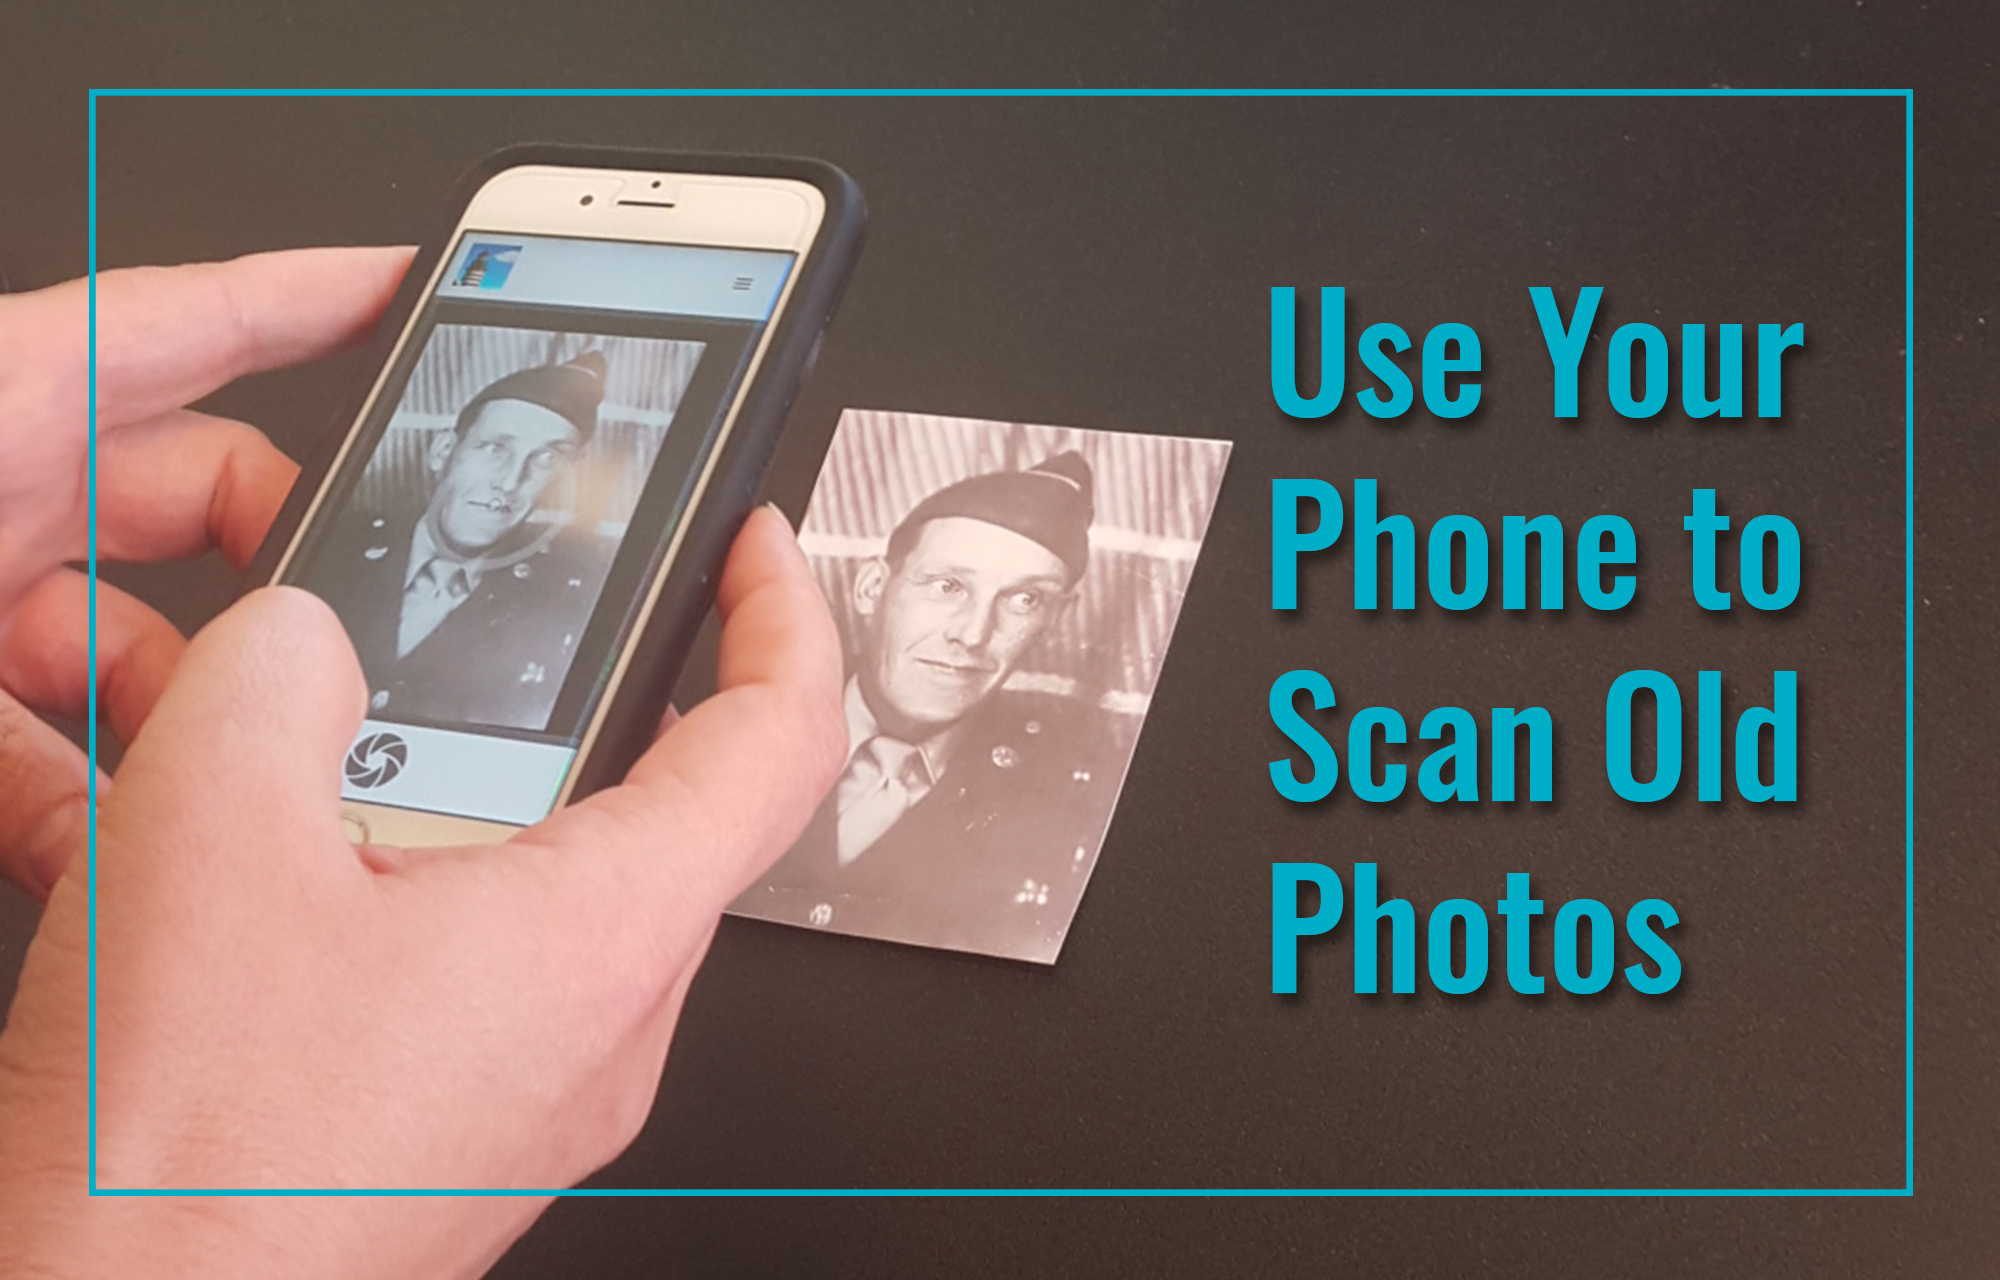 Use your iPhone to scan old photos using PicScanner.